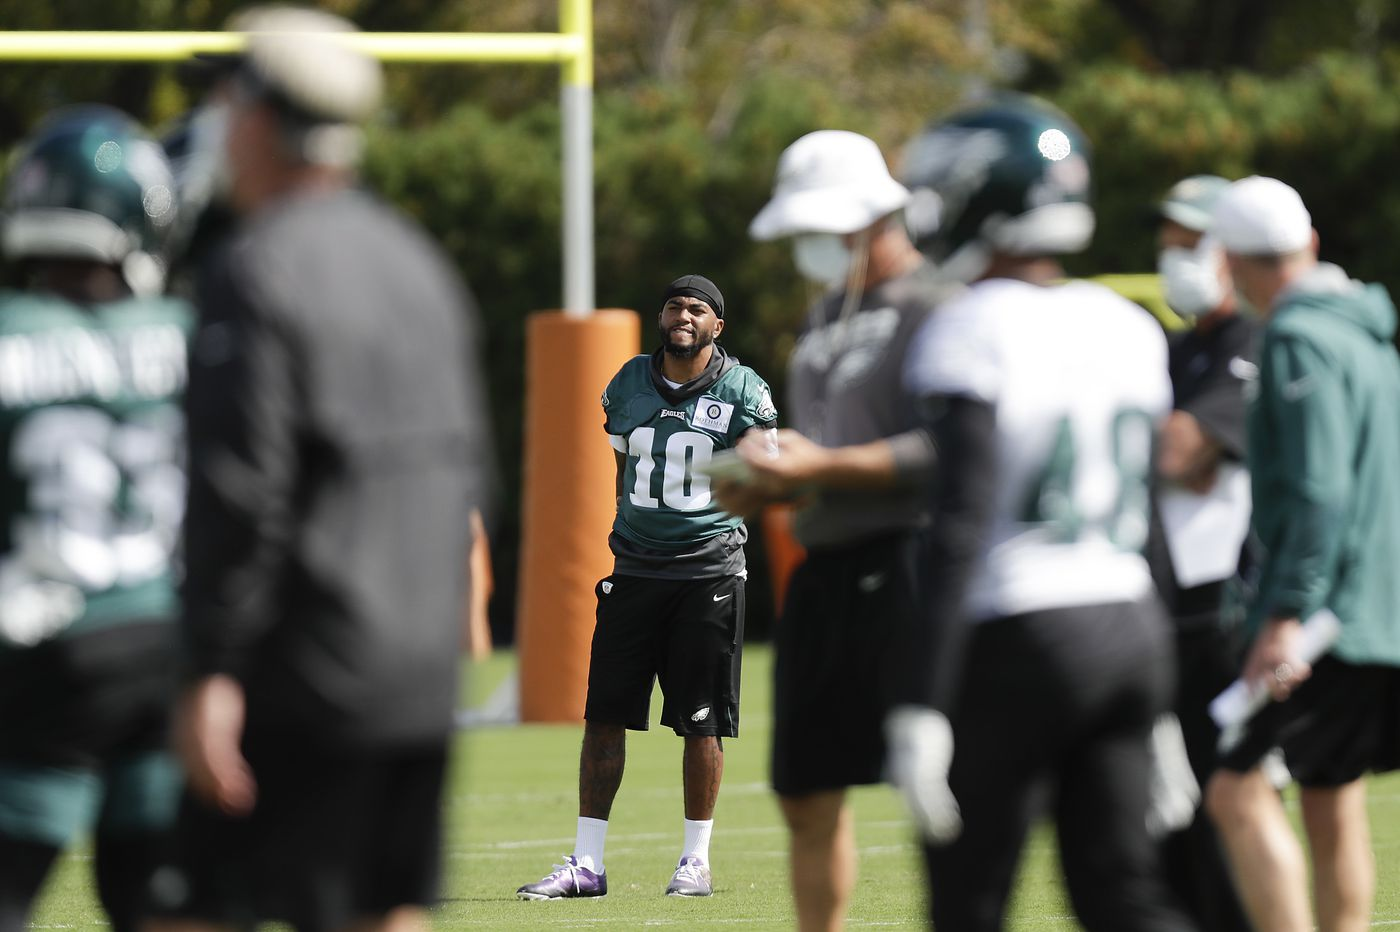 Injury report leaves Eagles thin at wide receiver, cornerback; 49ers QB Jimmy Garoppolo out